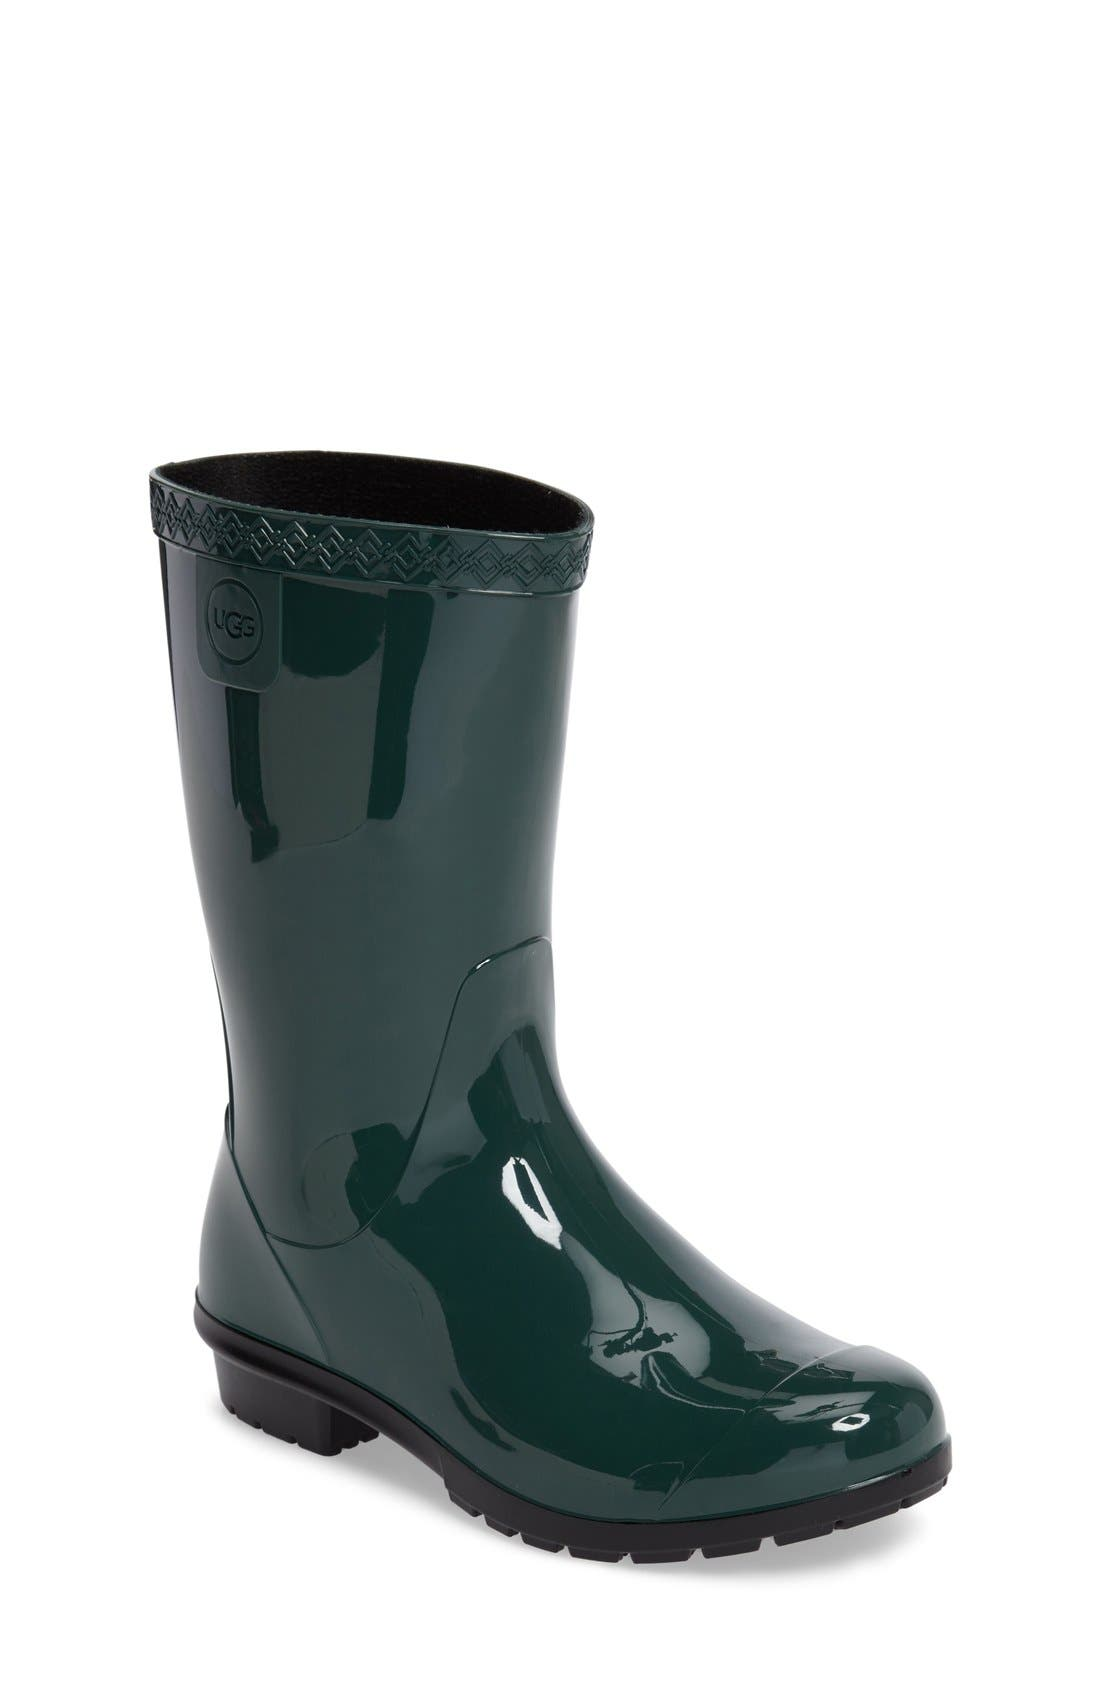 Alternate Image 1 Selected - UGG® Raana Waterproof Rain Boot (Little Kid & Big Kid)